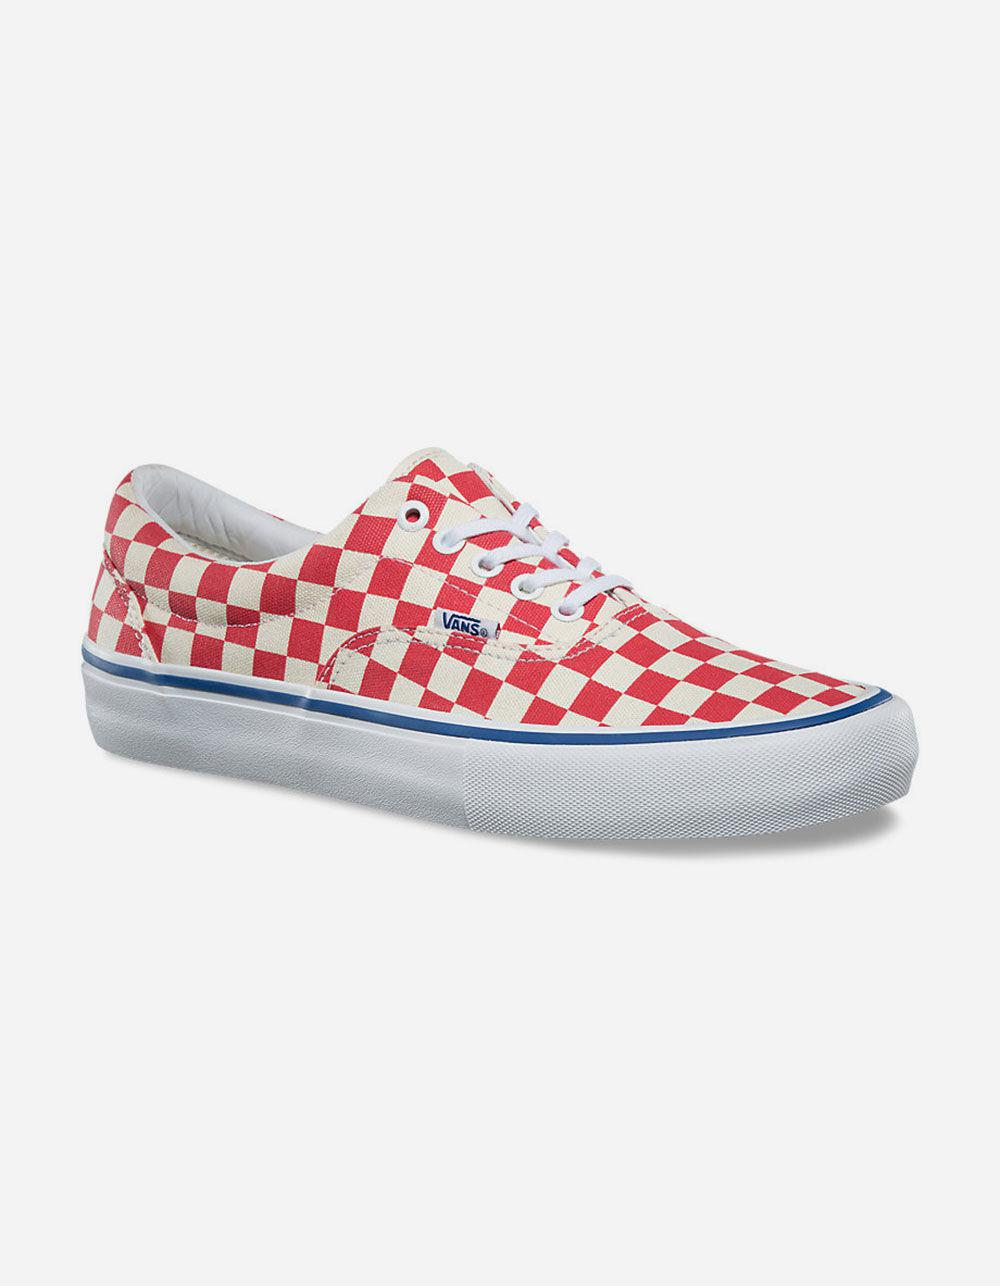 2633ab14e53e Lyst - Vans Checkerboard Era Pro Shoes in Red